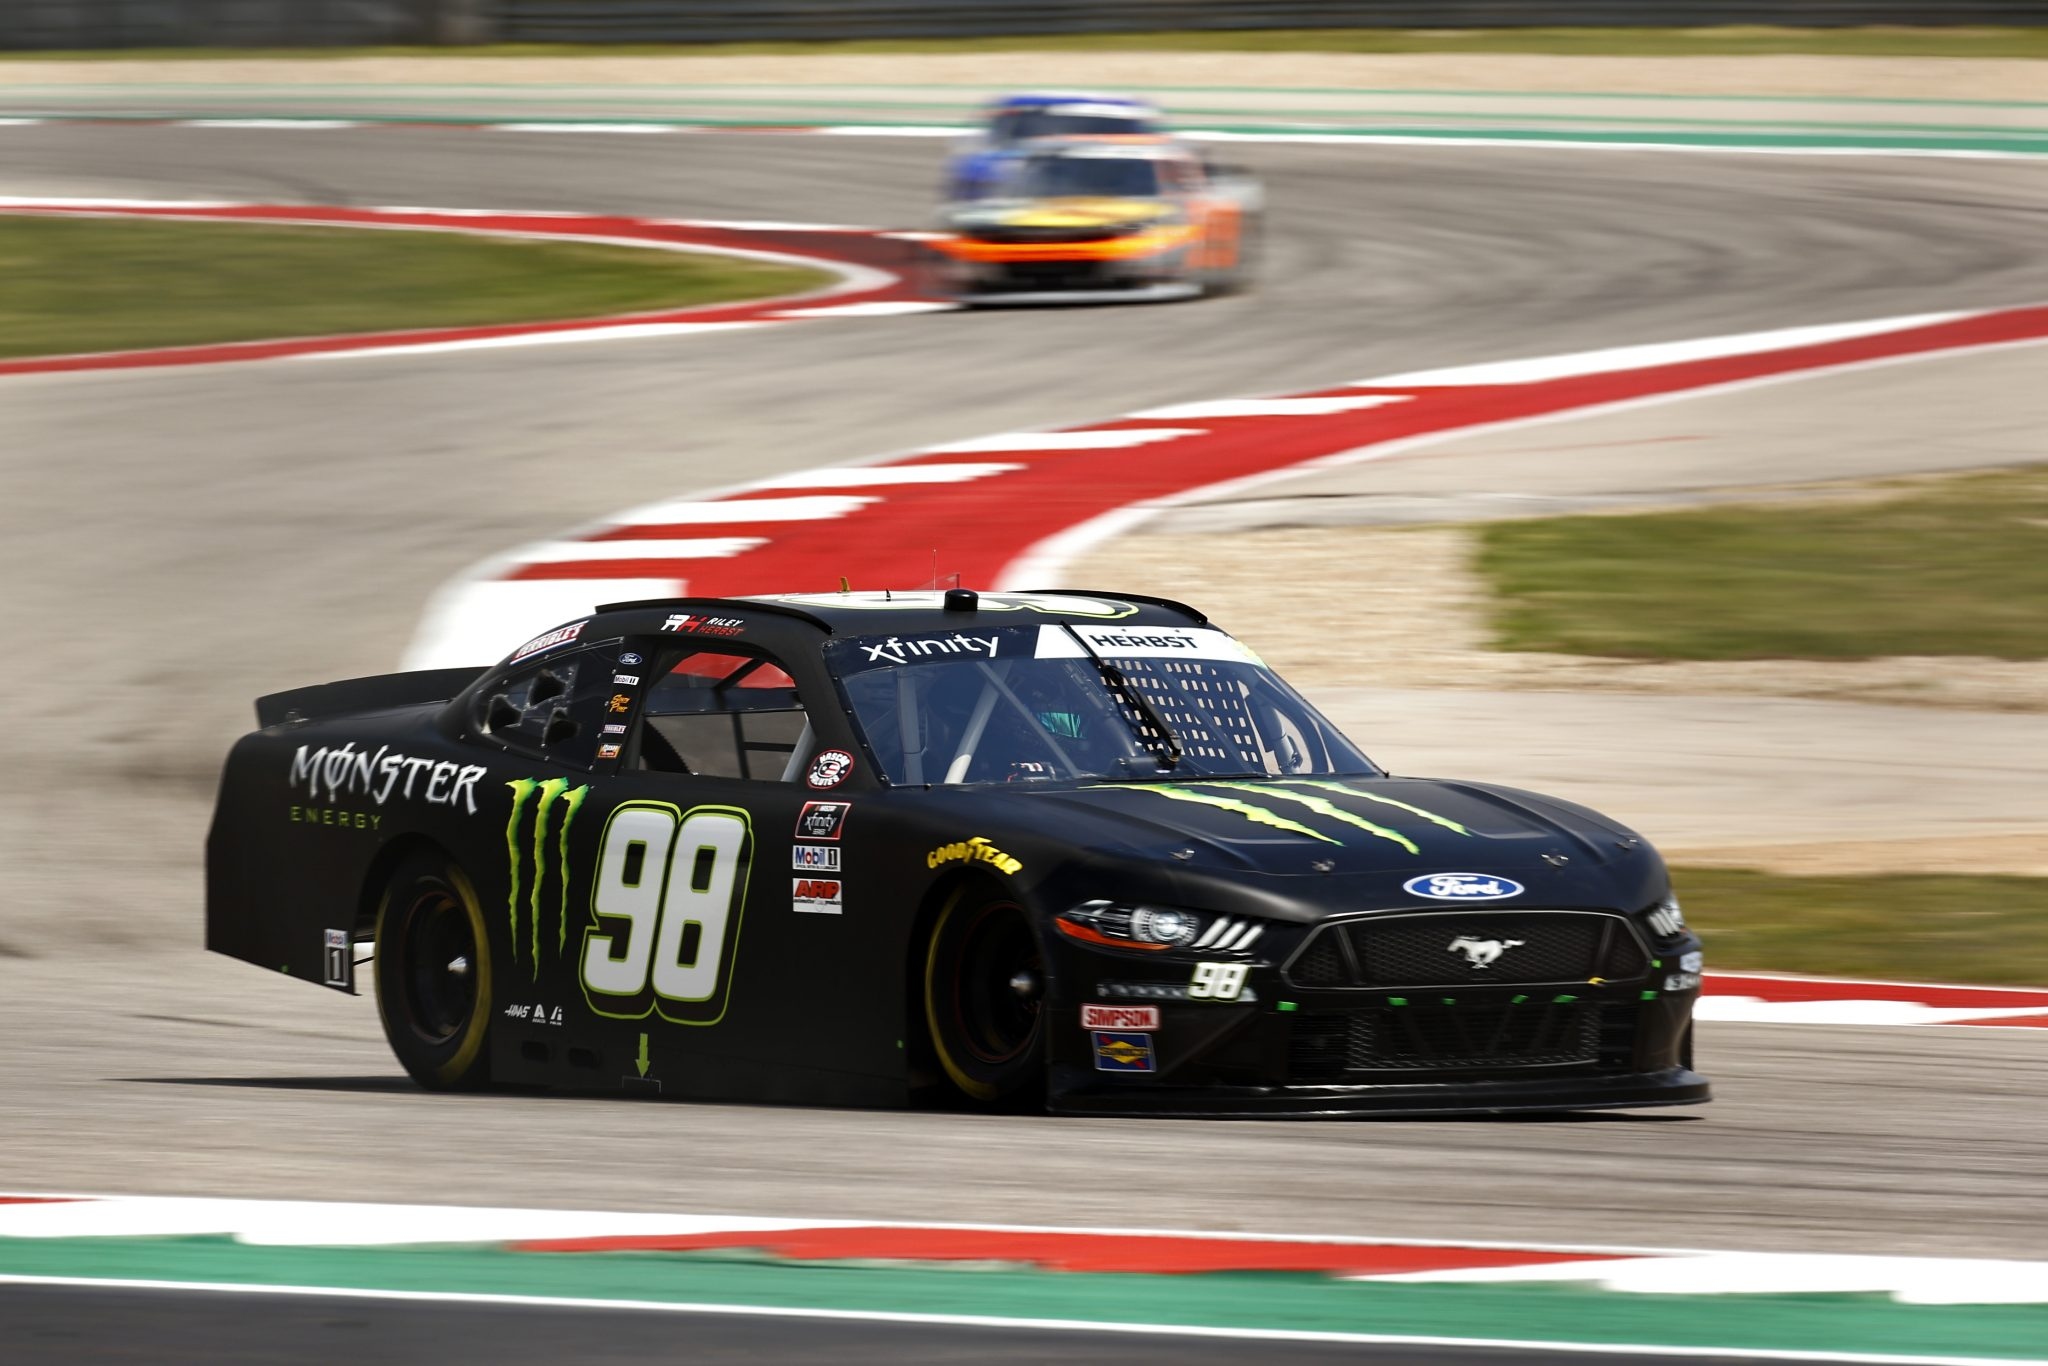 AUSTIN, TEXAS - MAY 21: Riley Herbst, driver of the #98 Monster Energy Ford, drives during practice for the NASCAR Xfinity Series Pit Boss 250 at Circuit of The Americas on May 21, 2021 in Austin, Texas. (Photo by Jared C. Tilton/Getty Images) | Getty Images